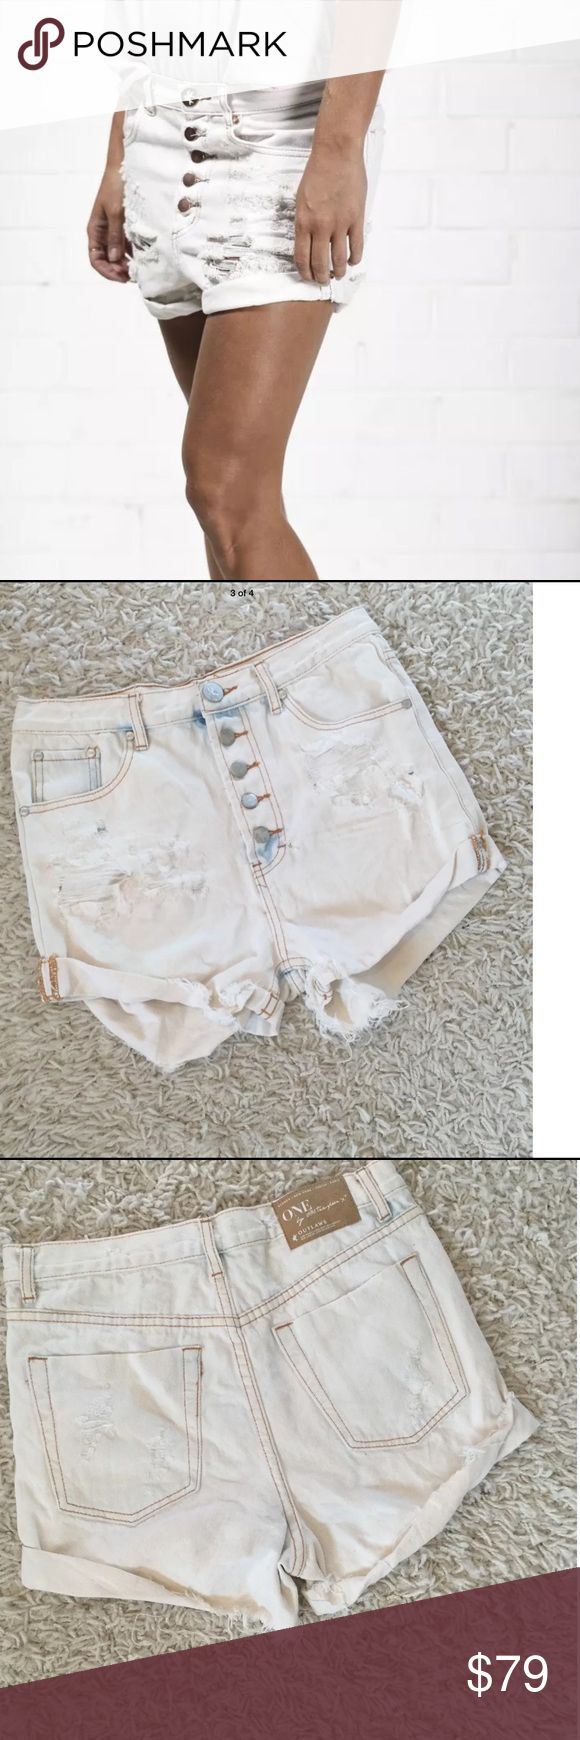 One teaspoon shorts outlaw Sz 26 New without tag One Teaspoon Shorts